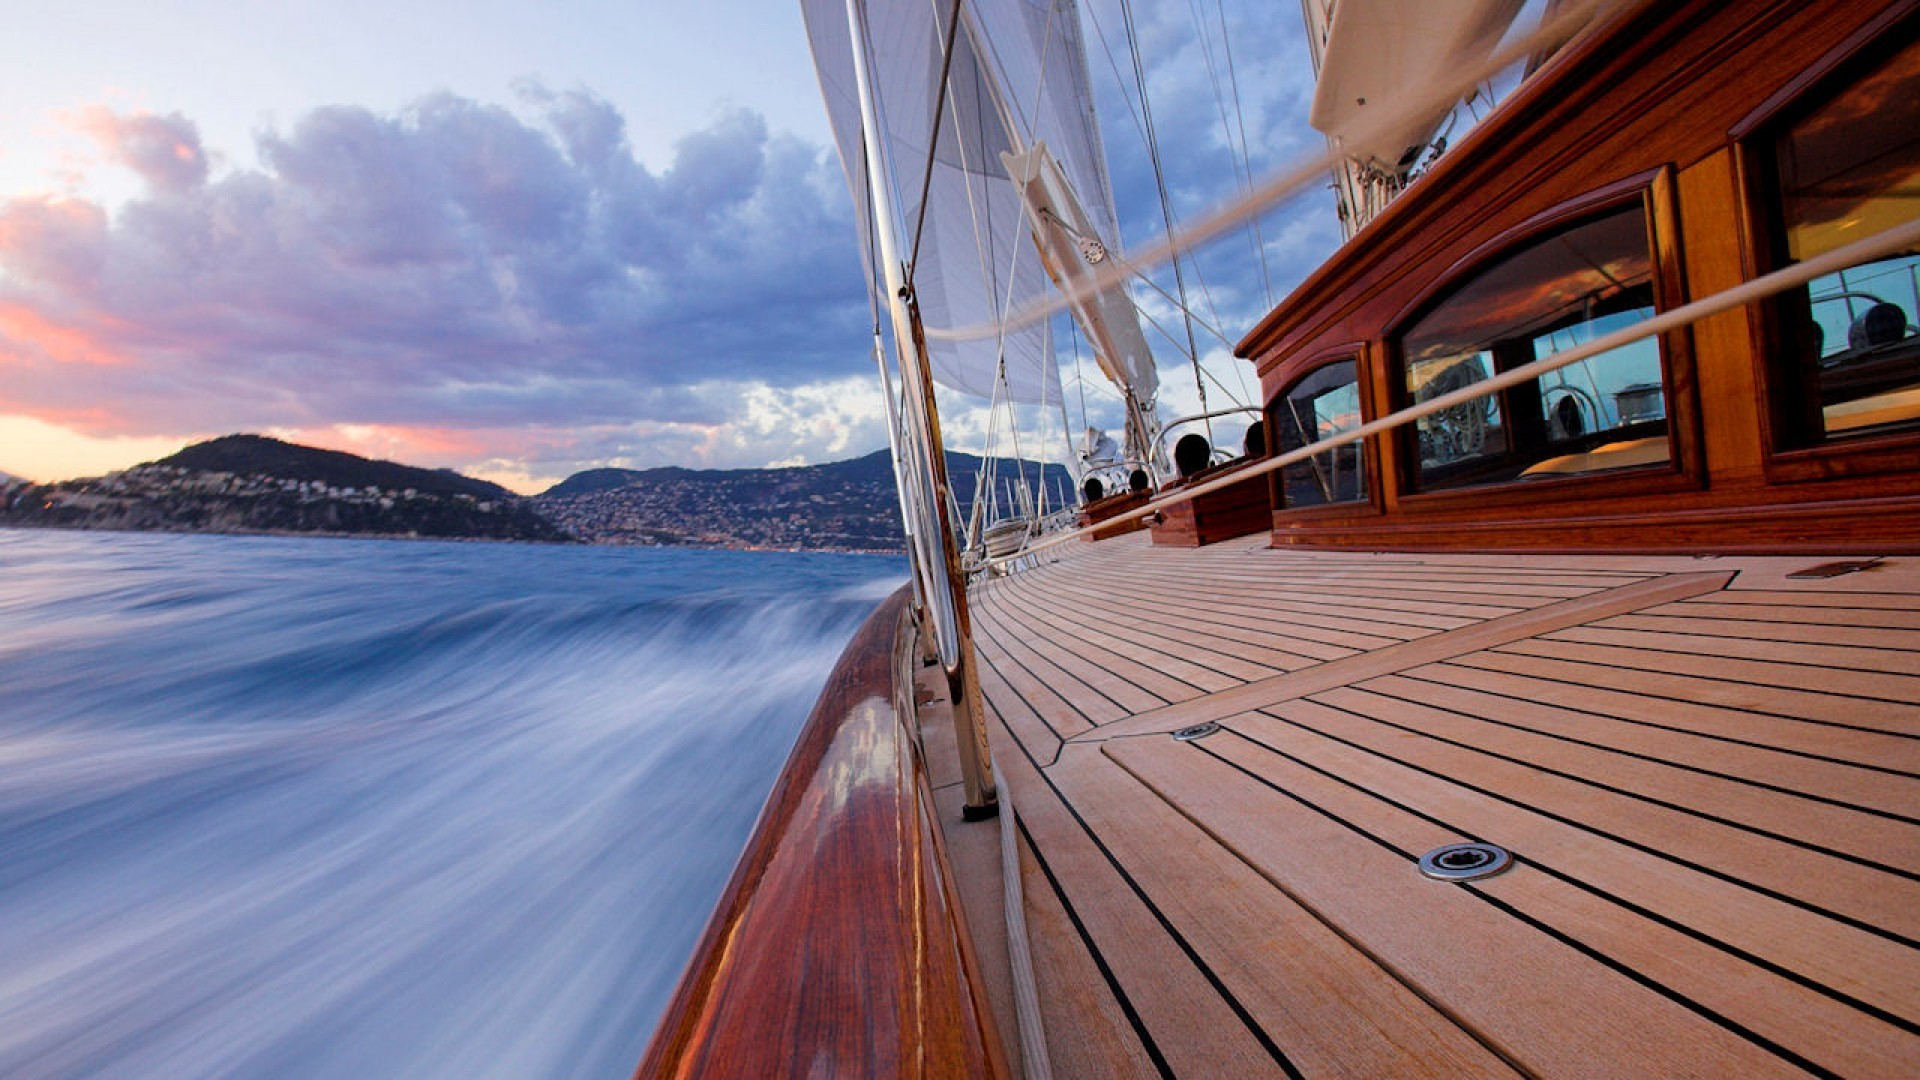 sailing in the french riviera wallpaper allwallpaperin